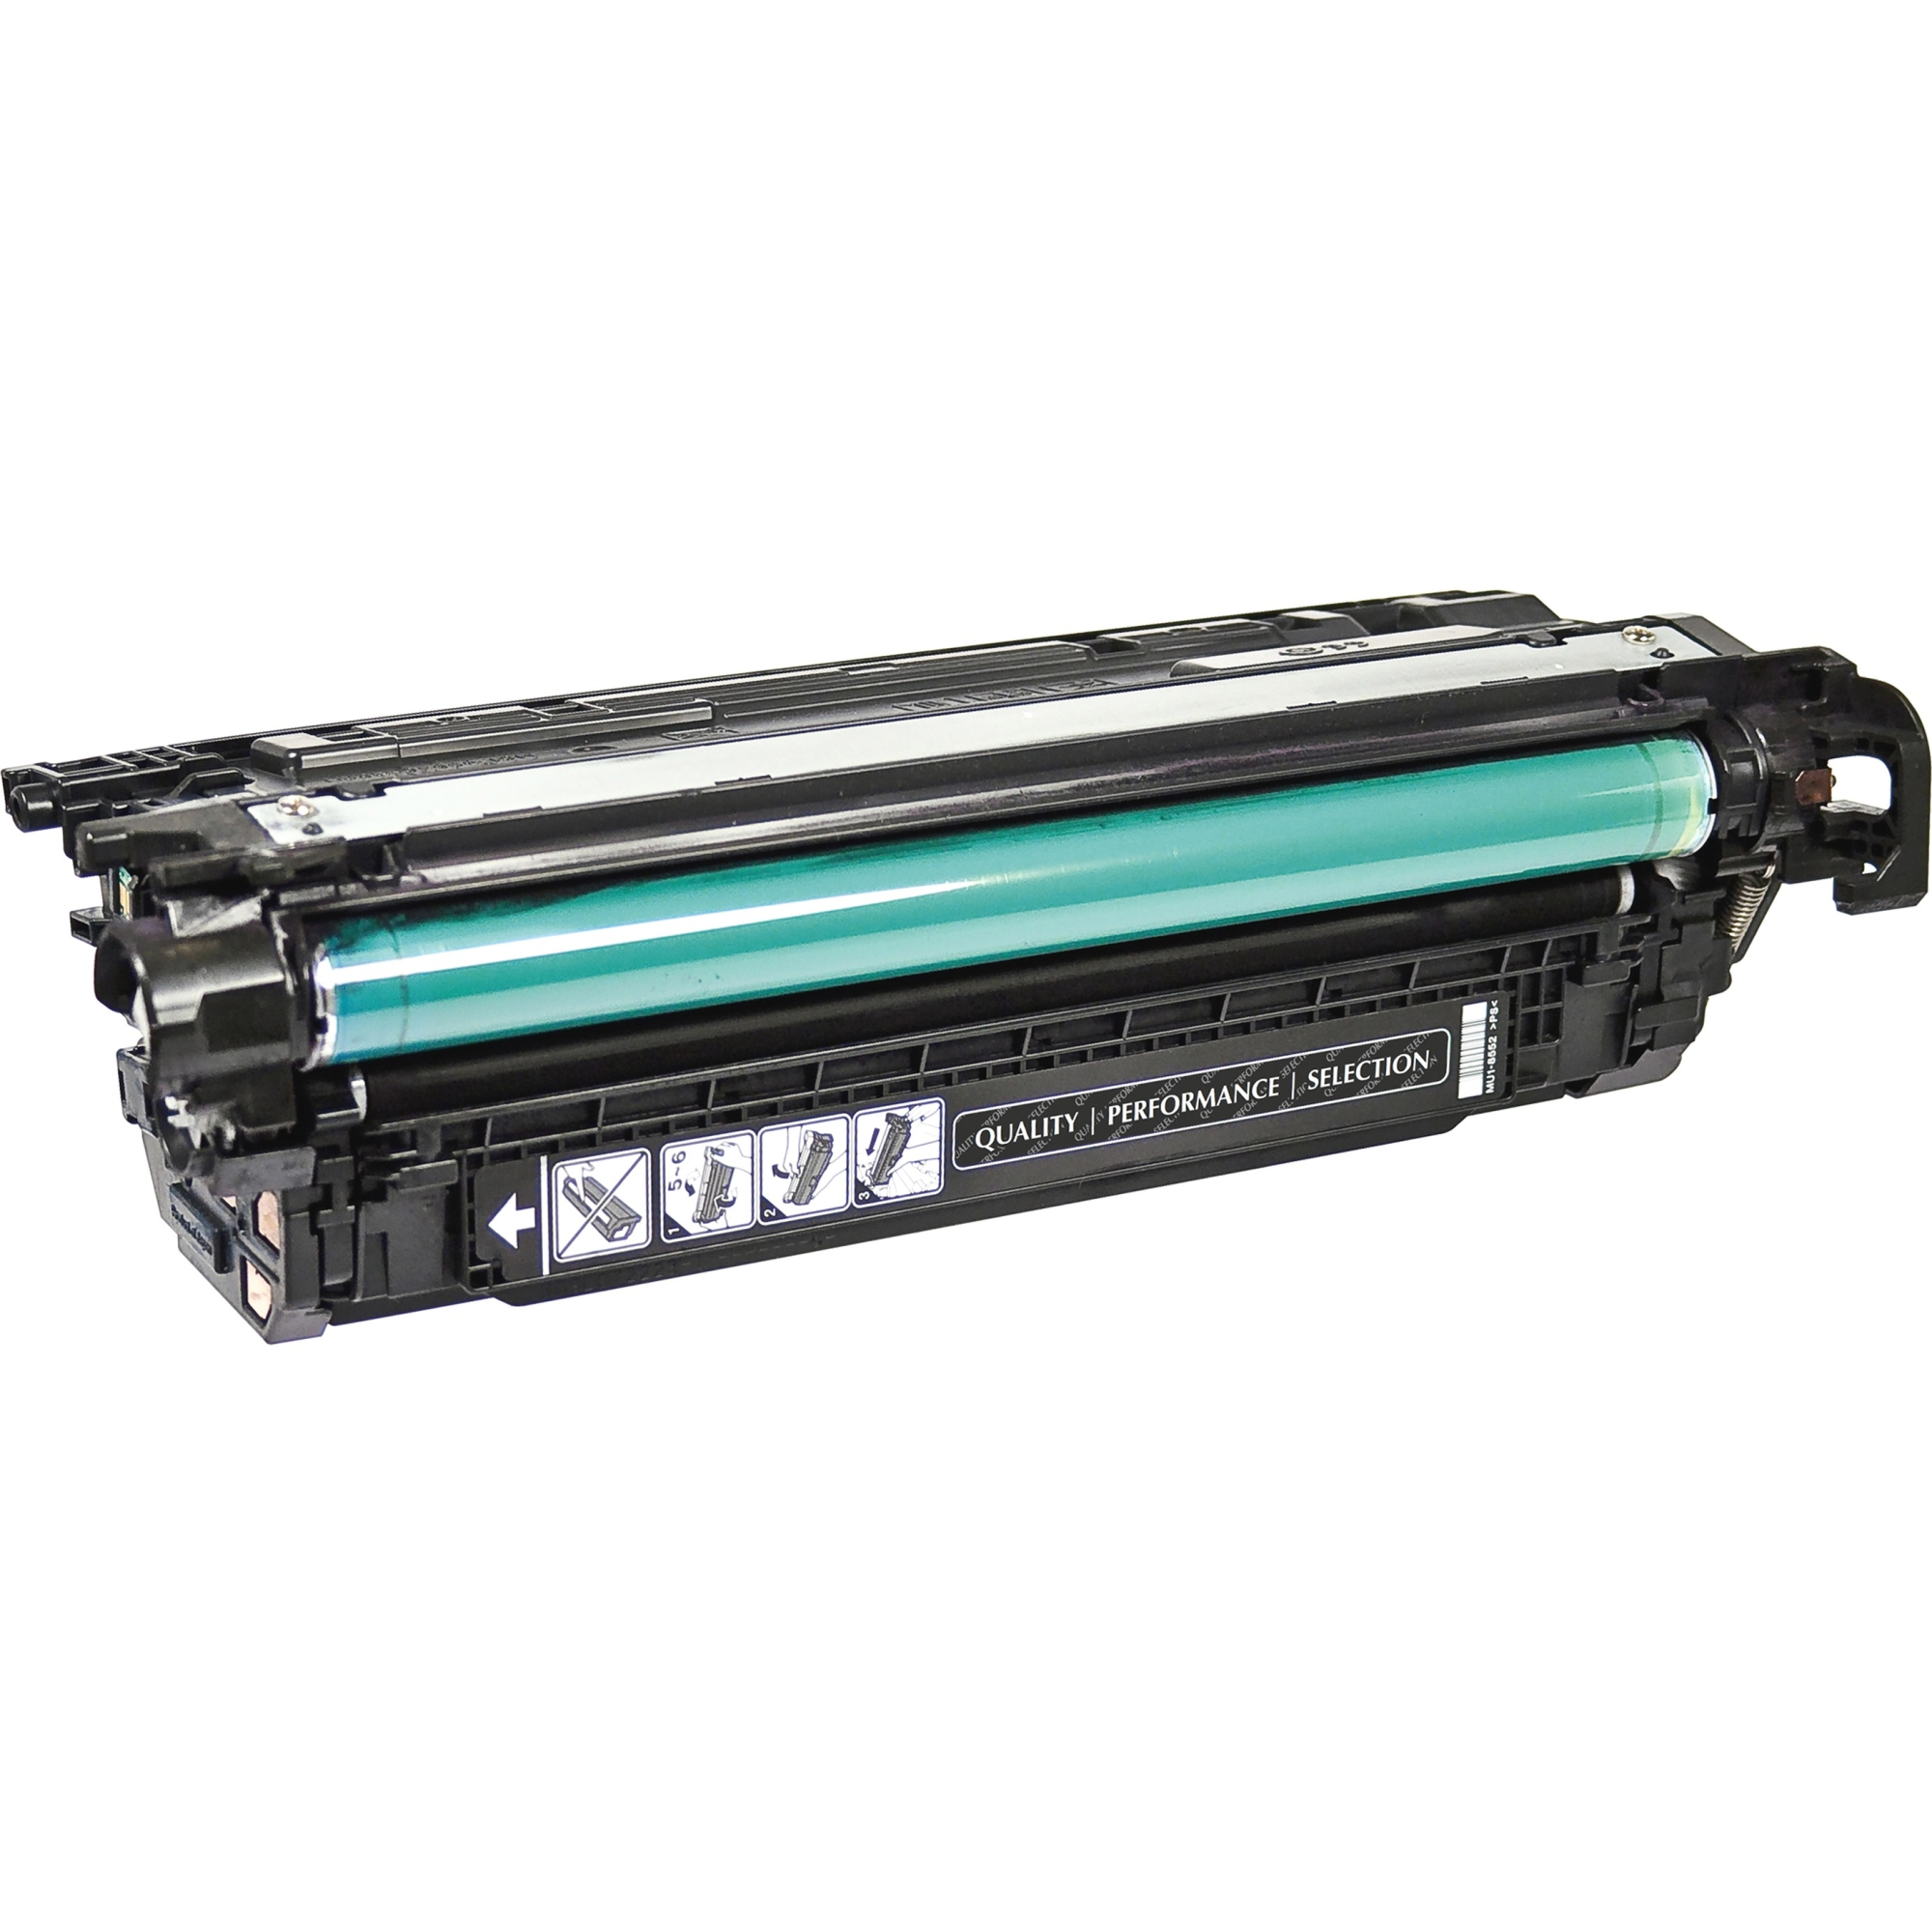 Toner Cartridge - Replacement for HP (CE260X) - Black - Laser - High Yield - 9000 Page